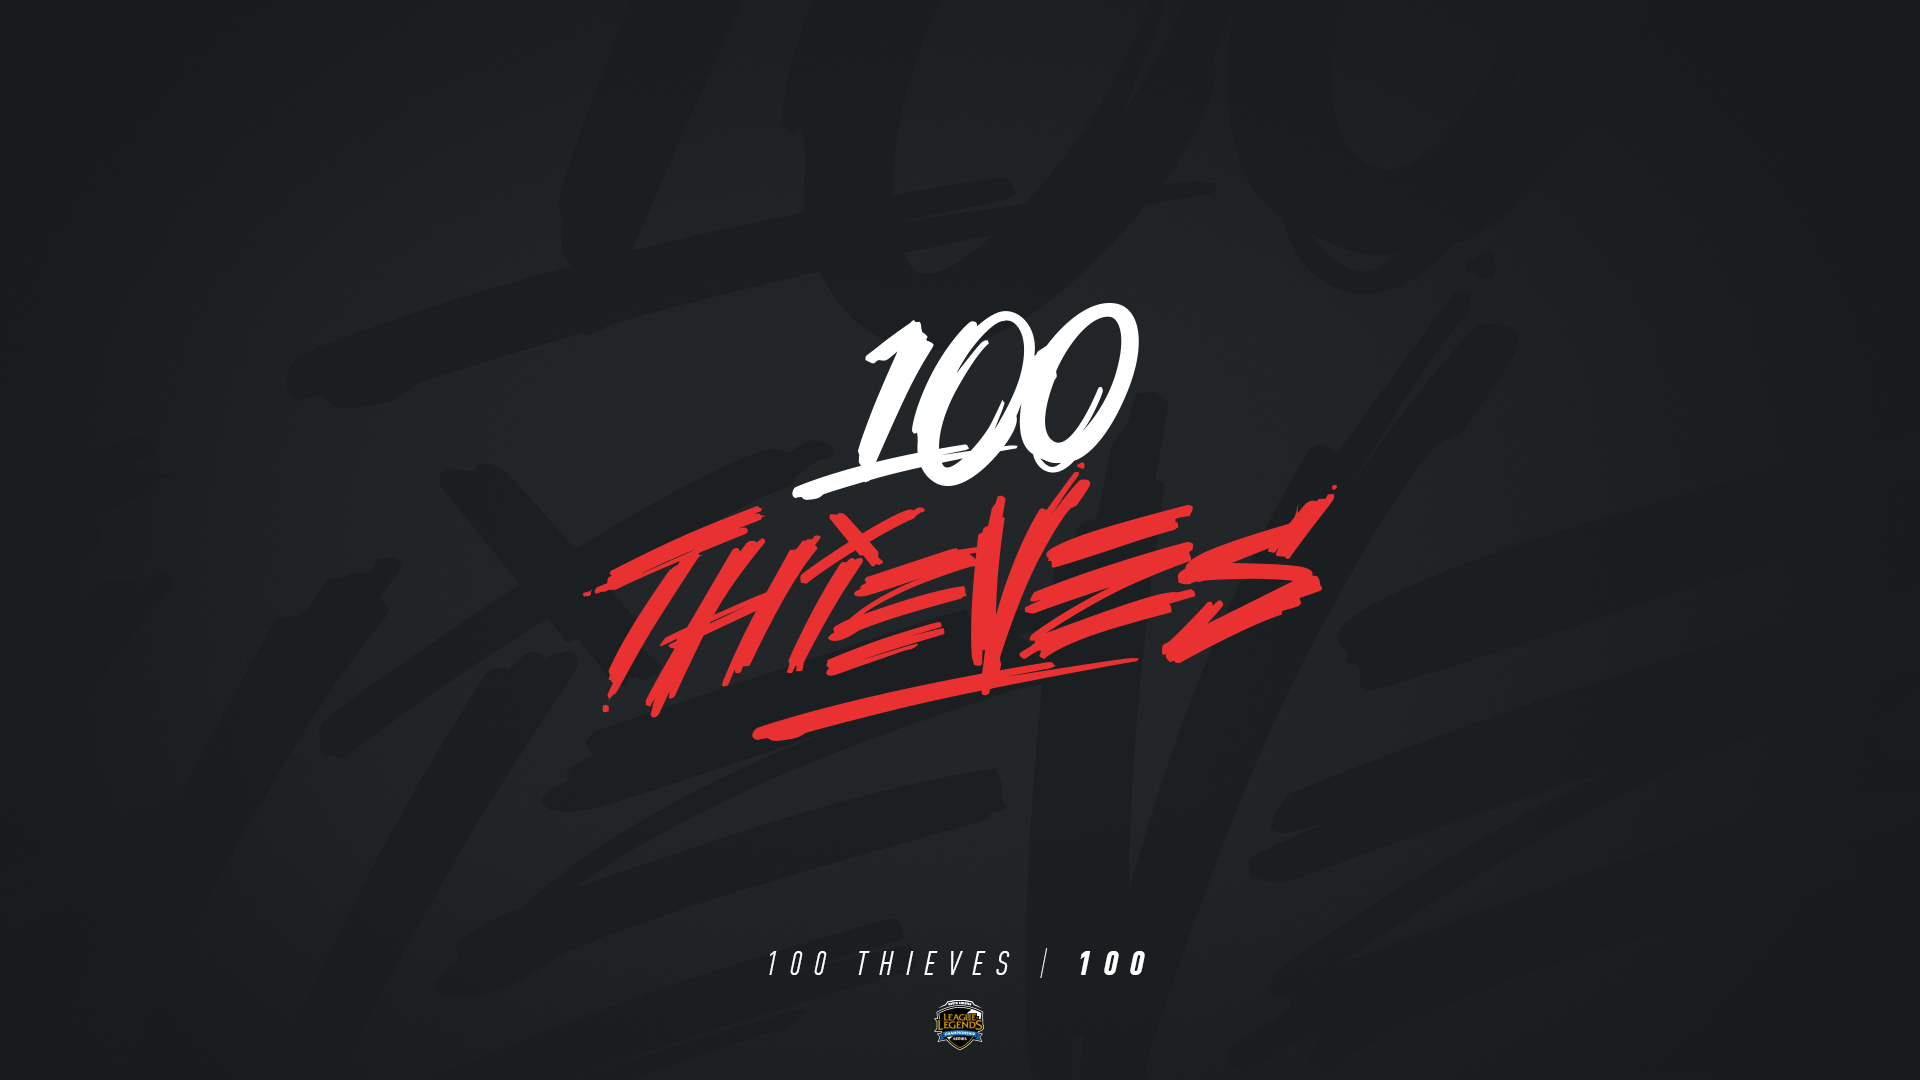 2018 na lcs 100 thieves